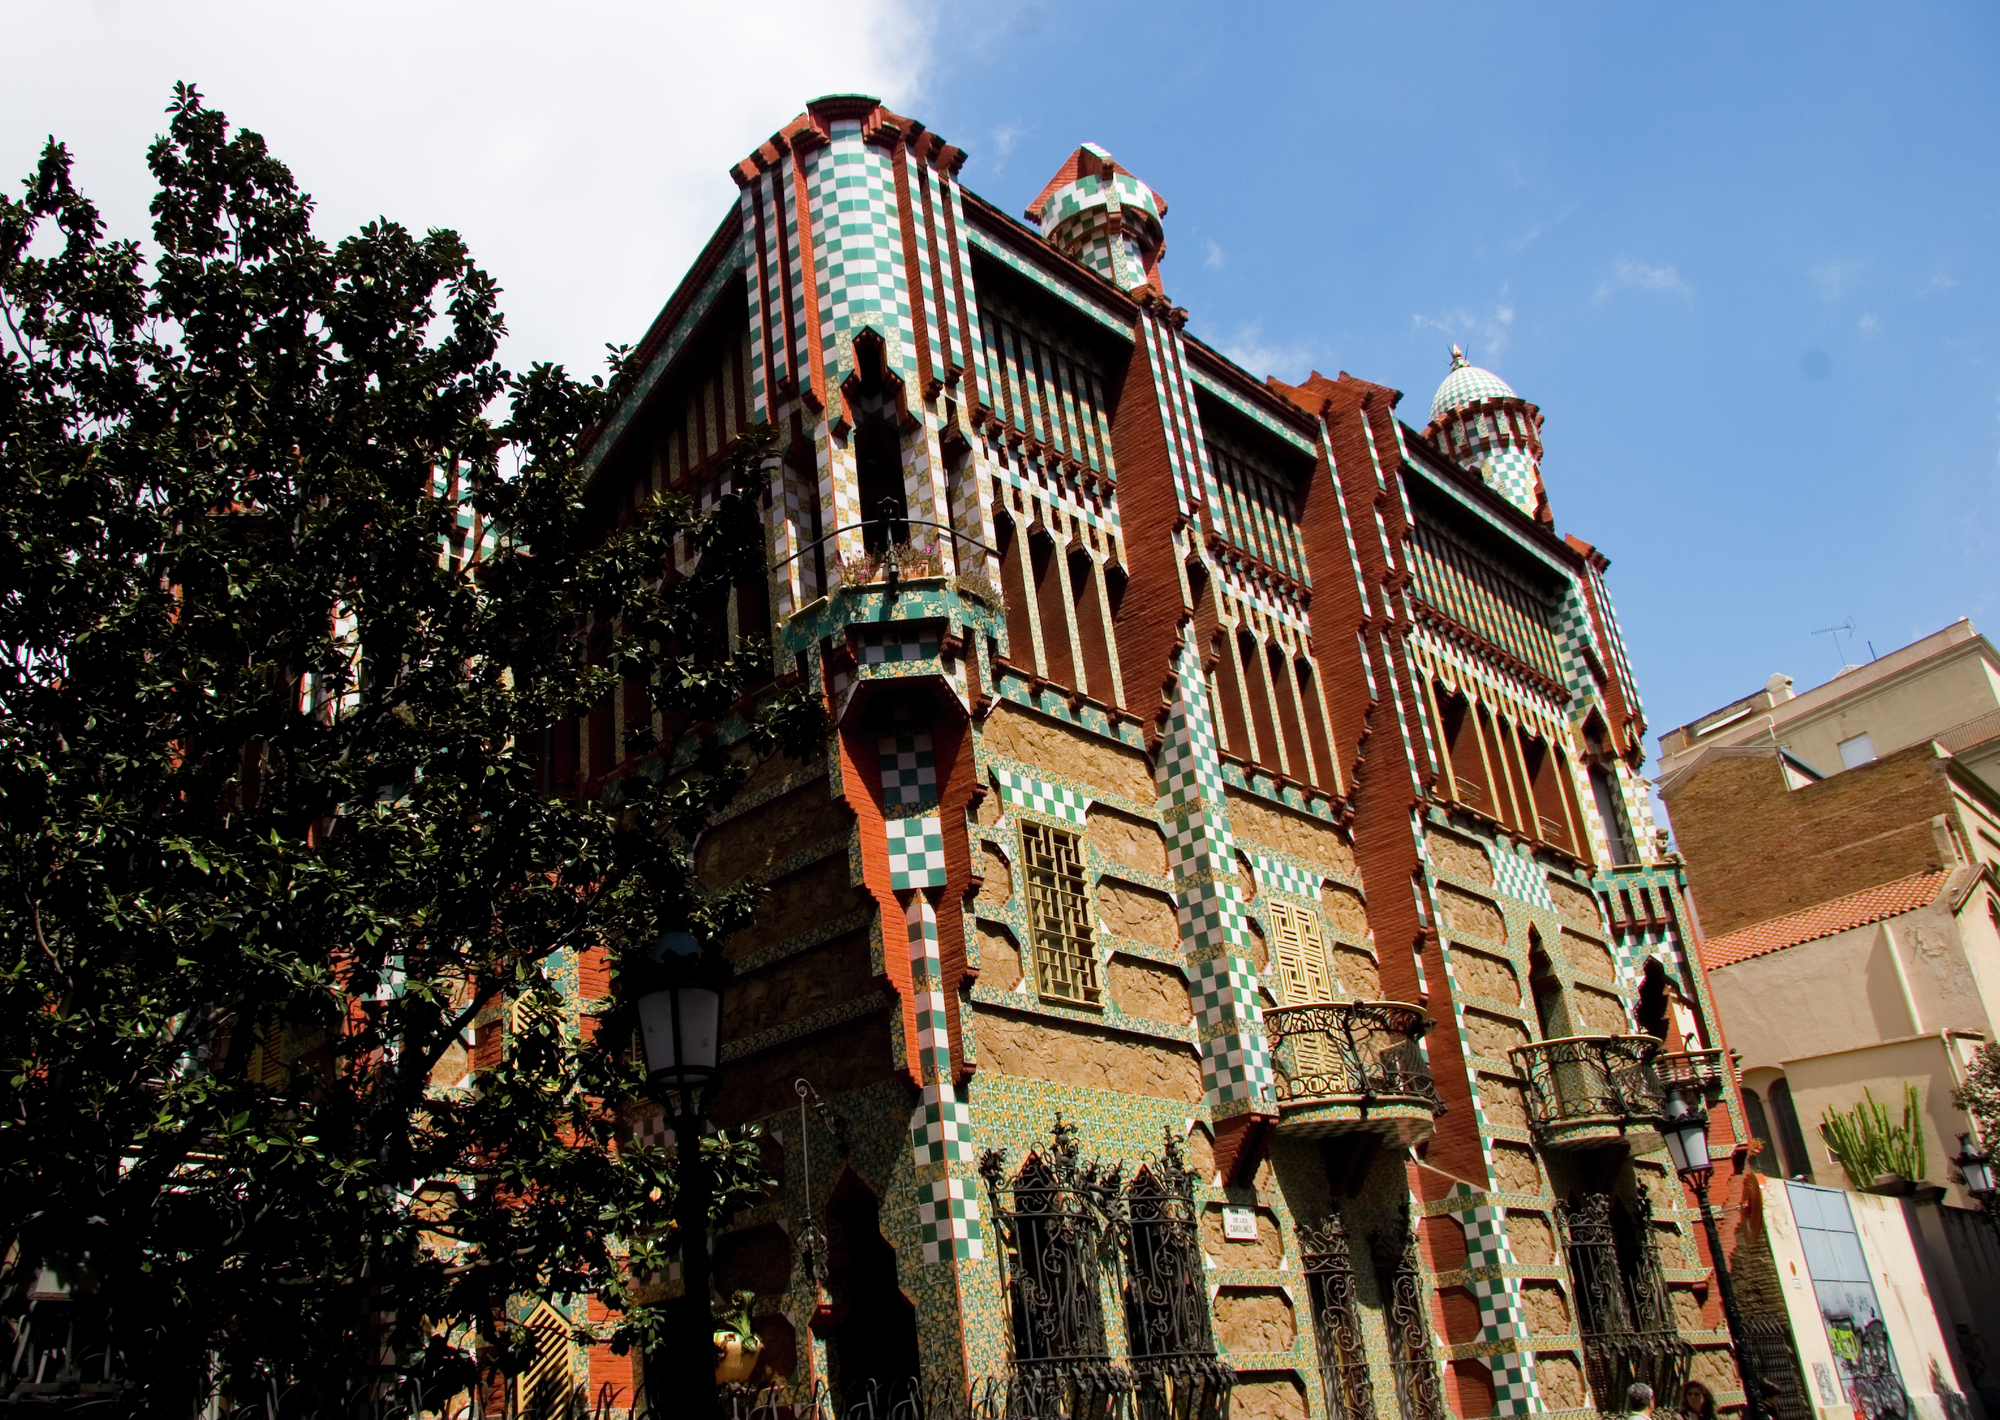 Gaud s casa vicens to open as a museum in 2016 archdaily for Casa vicens gaudi